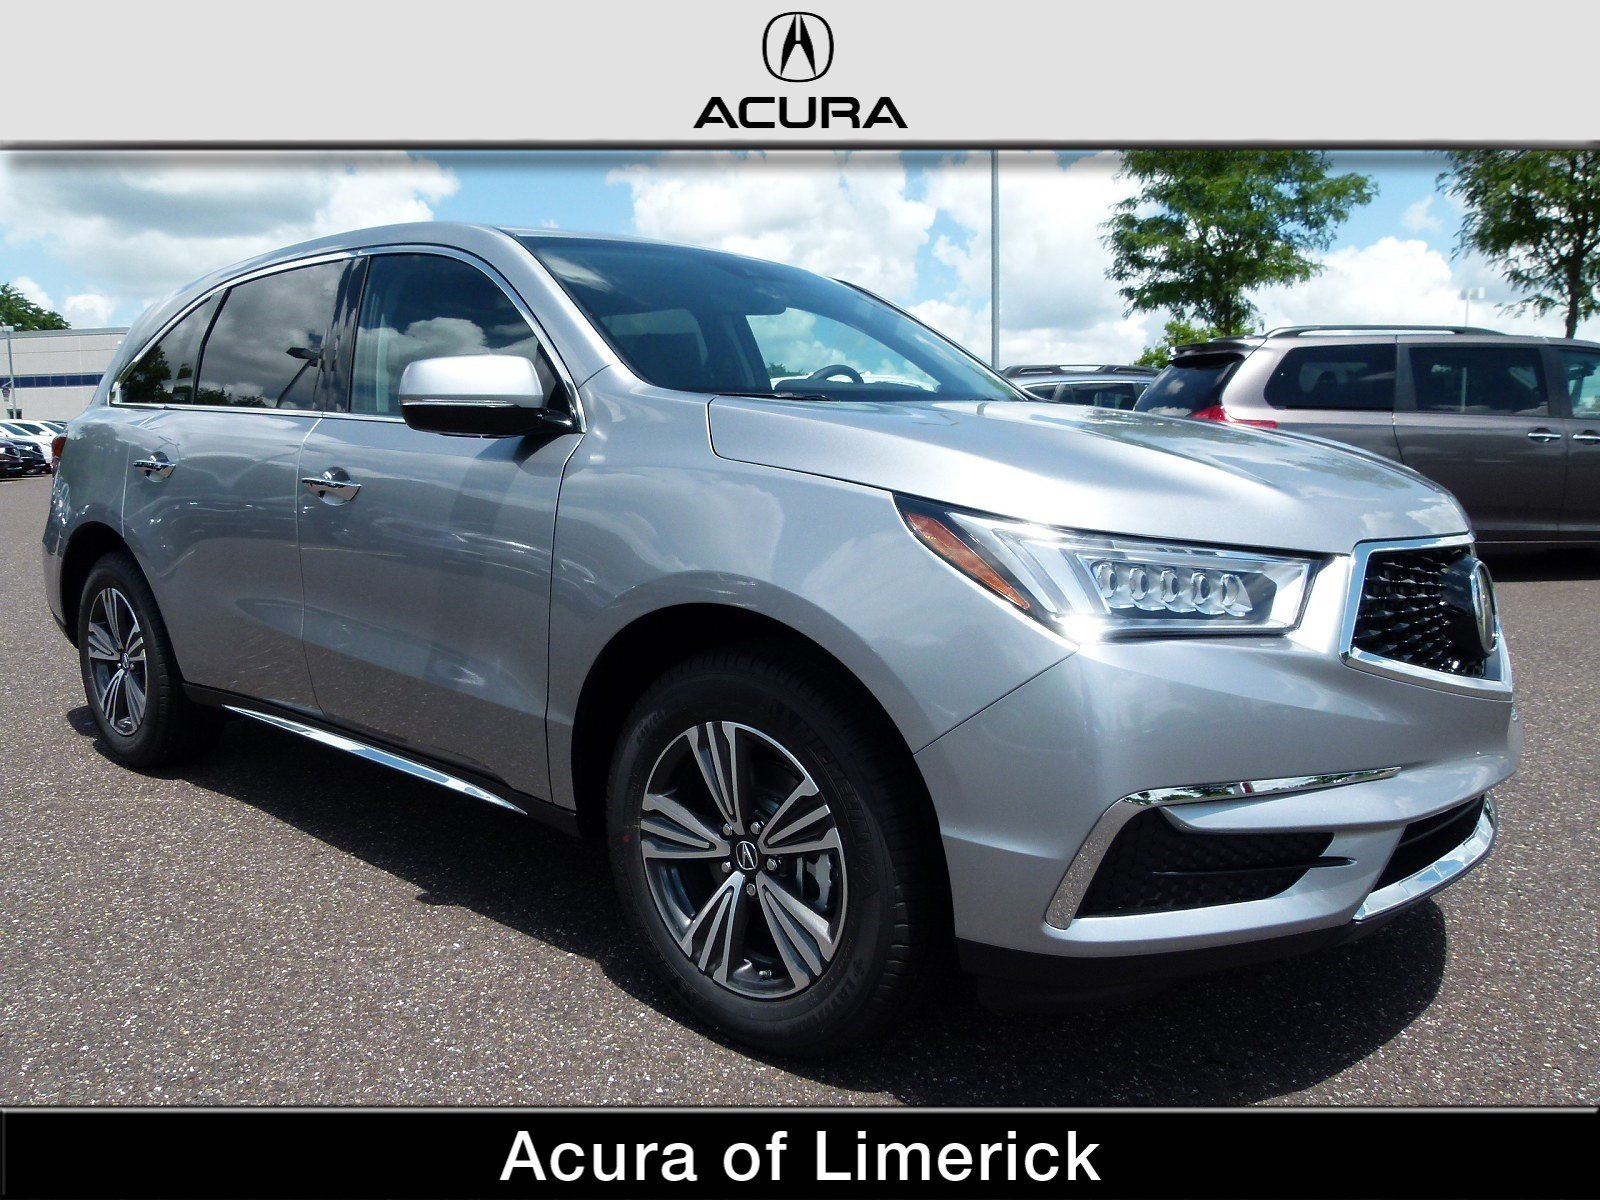 Take A Look About Check Emission System Acura Mdx with Awesome